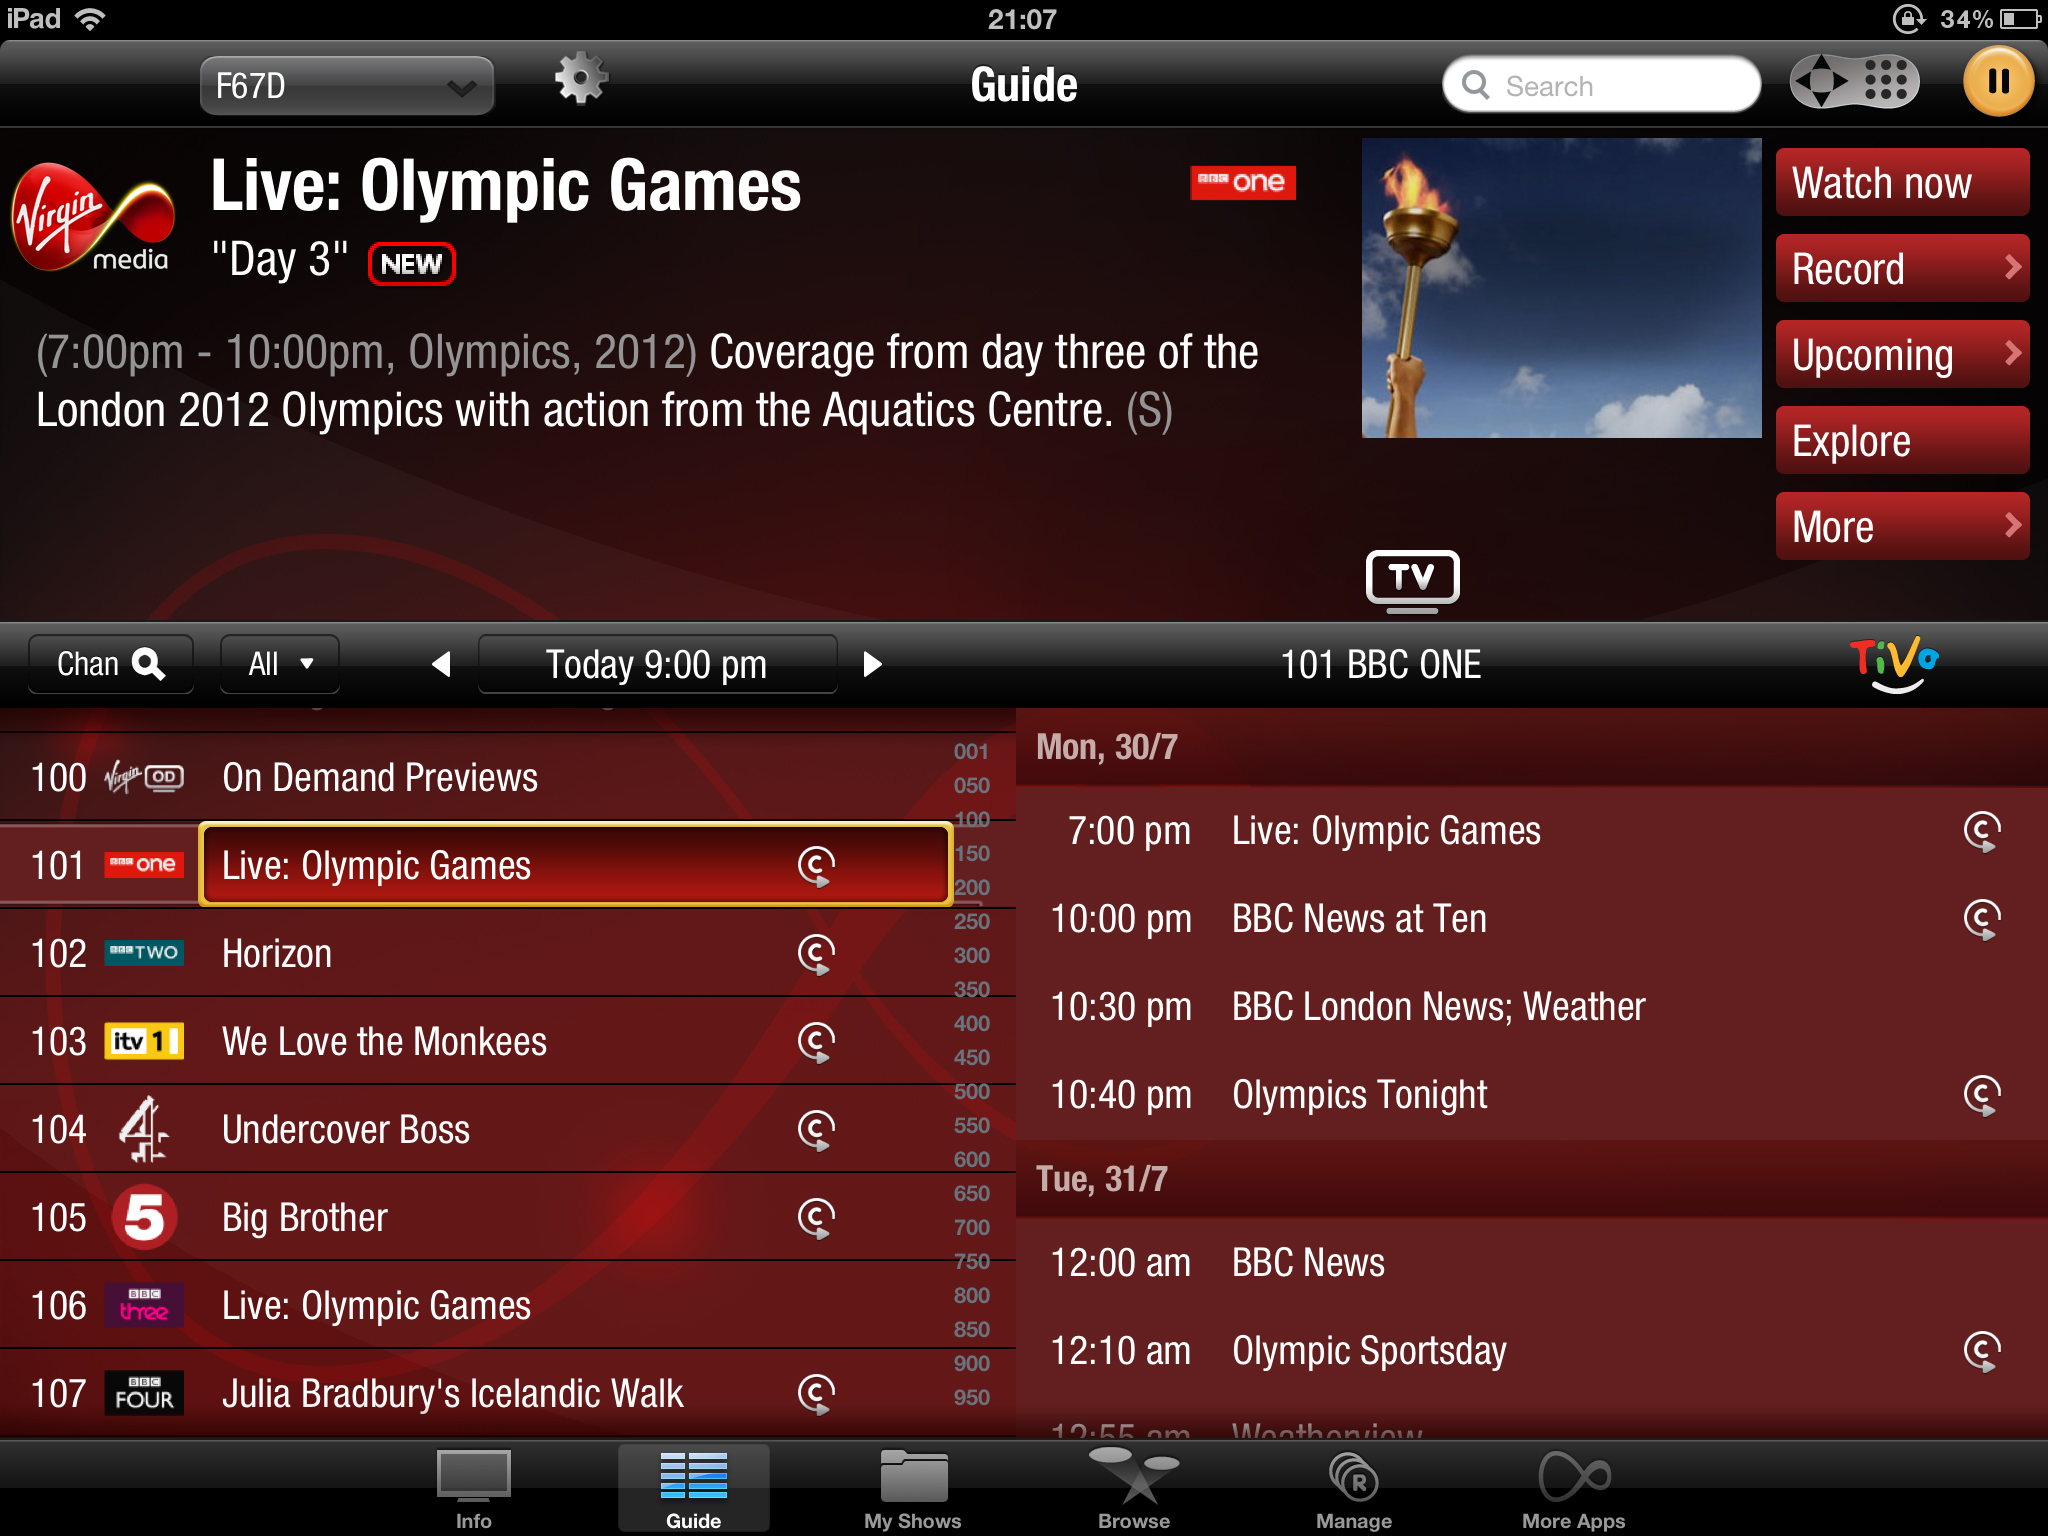 Virgin Media TV Anywhere iPad app - TV Guide screen